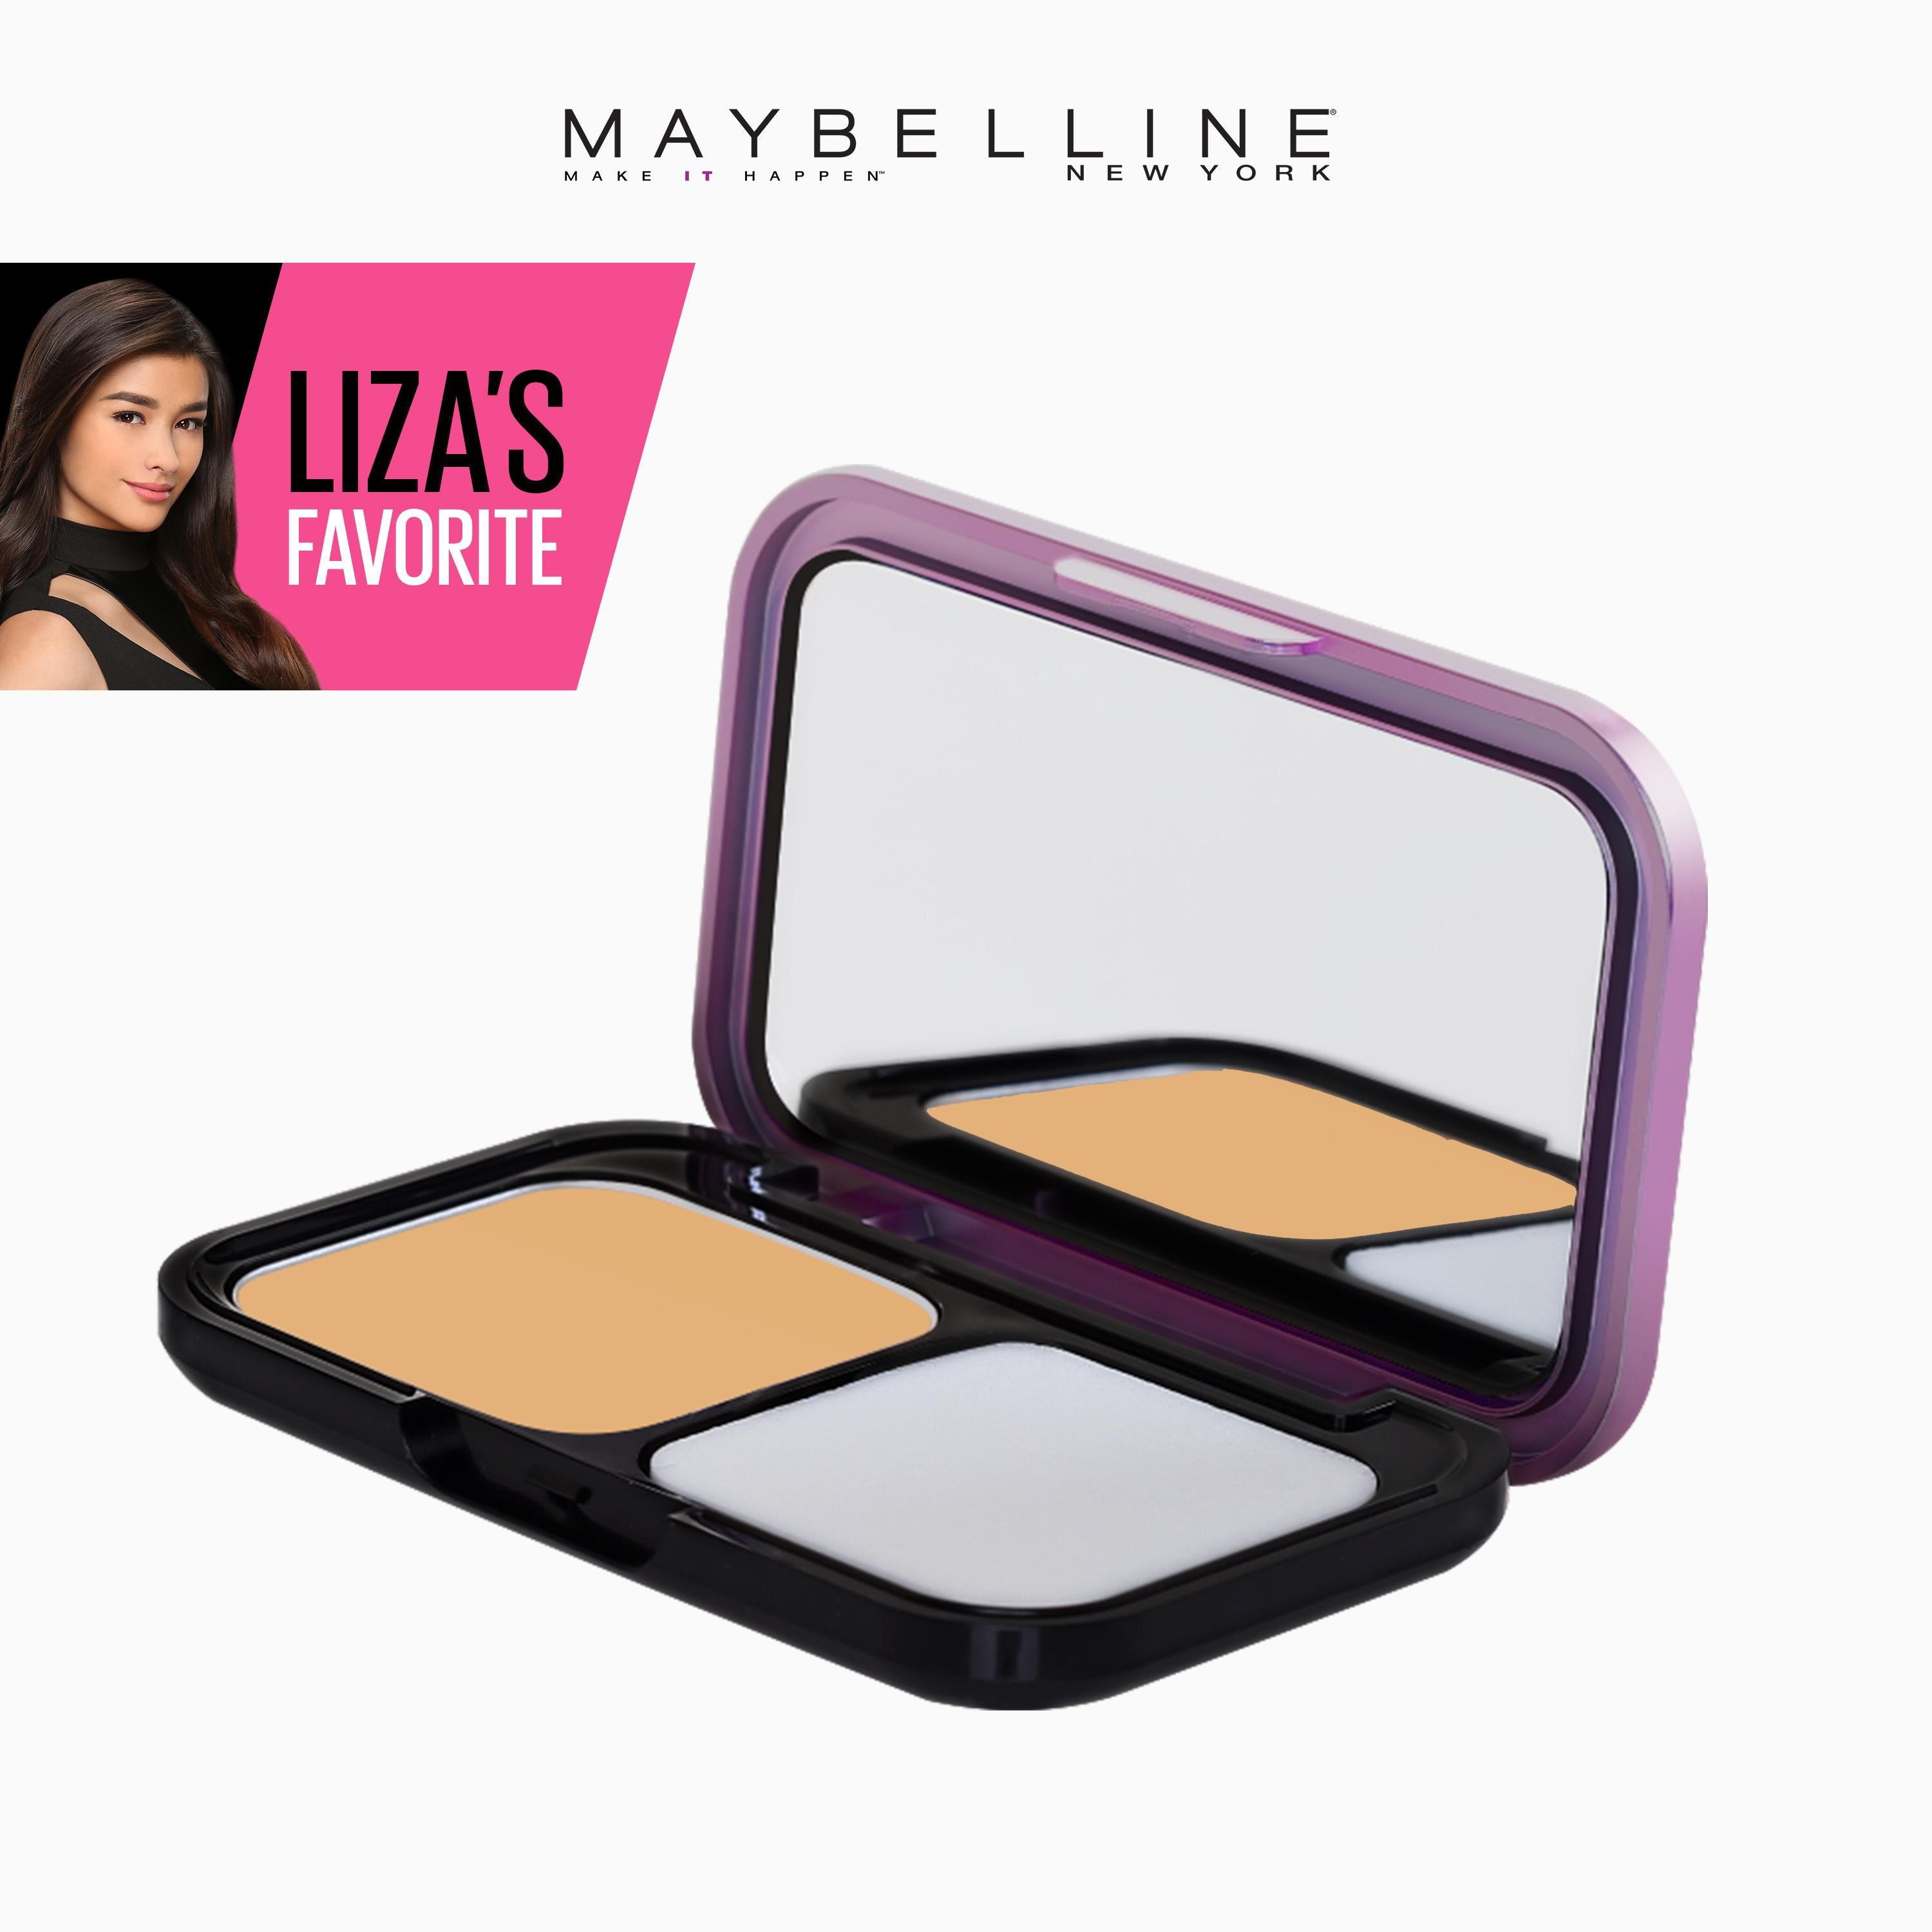 Clearsmooth All In One Powder Foundation – 04 Honey SPF32 PA+++ [Lizas Powder] by Maybelline Philippines